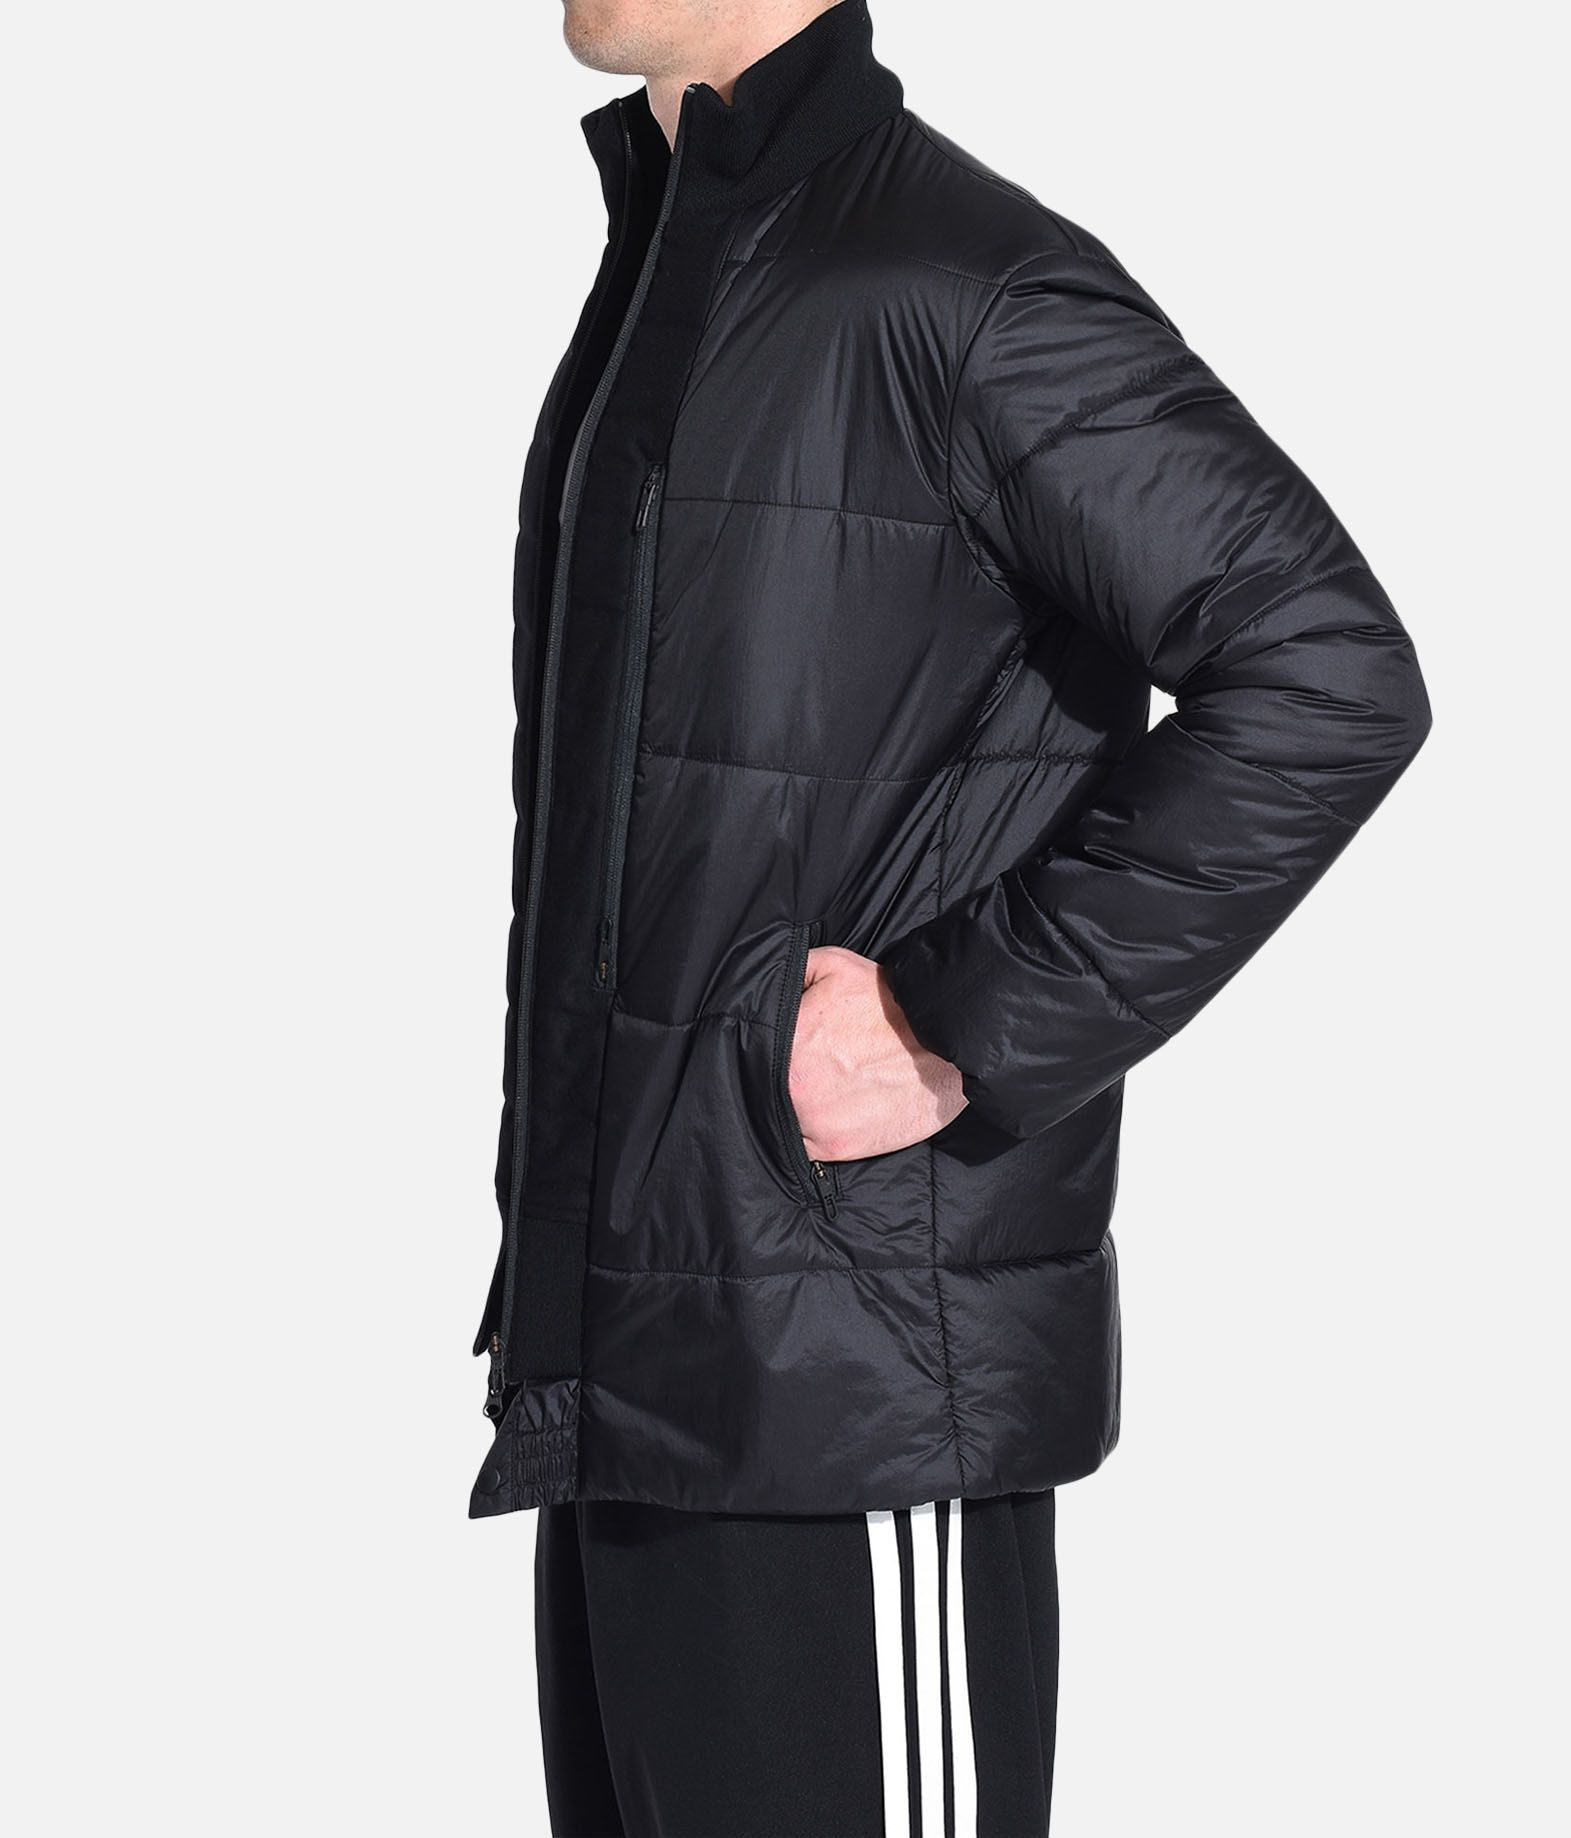 Y-3 Y-3 Patchwork Down Jacket Down jacket Man e